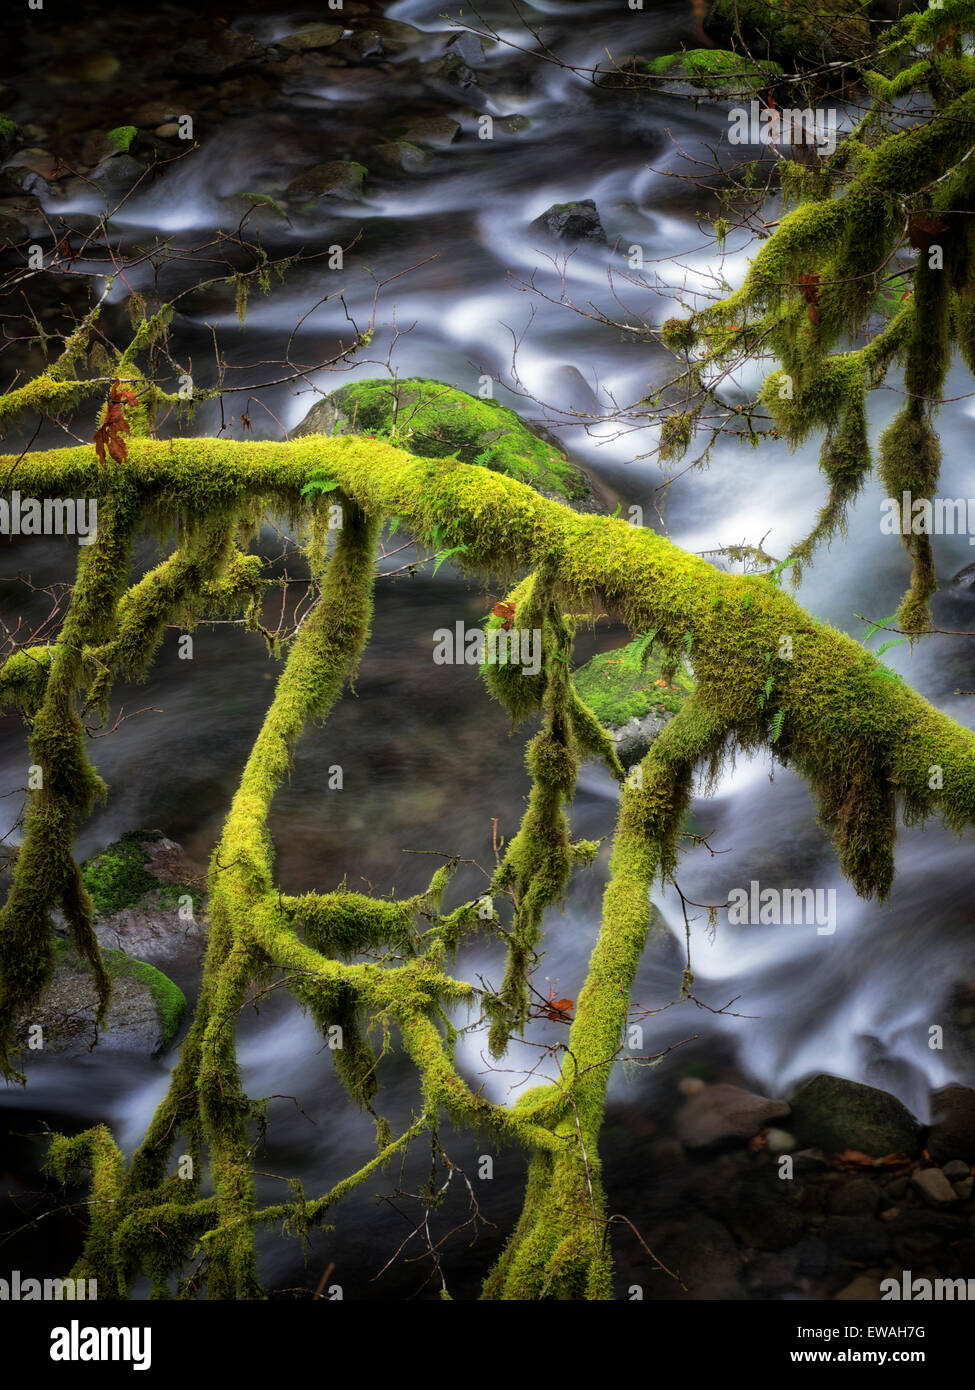 Moss covered tree along banks of Eagle Creek. Columbia River Gorge National Scenic Area, Oregon - Stock Image